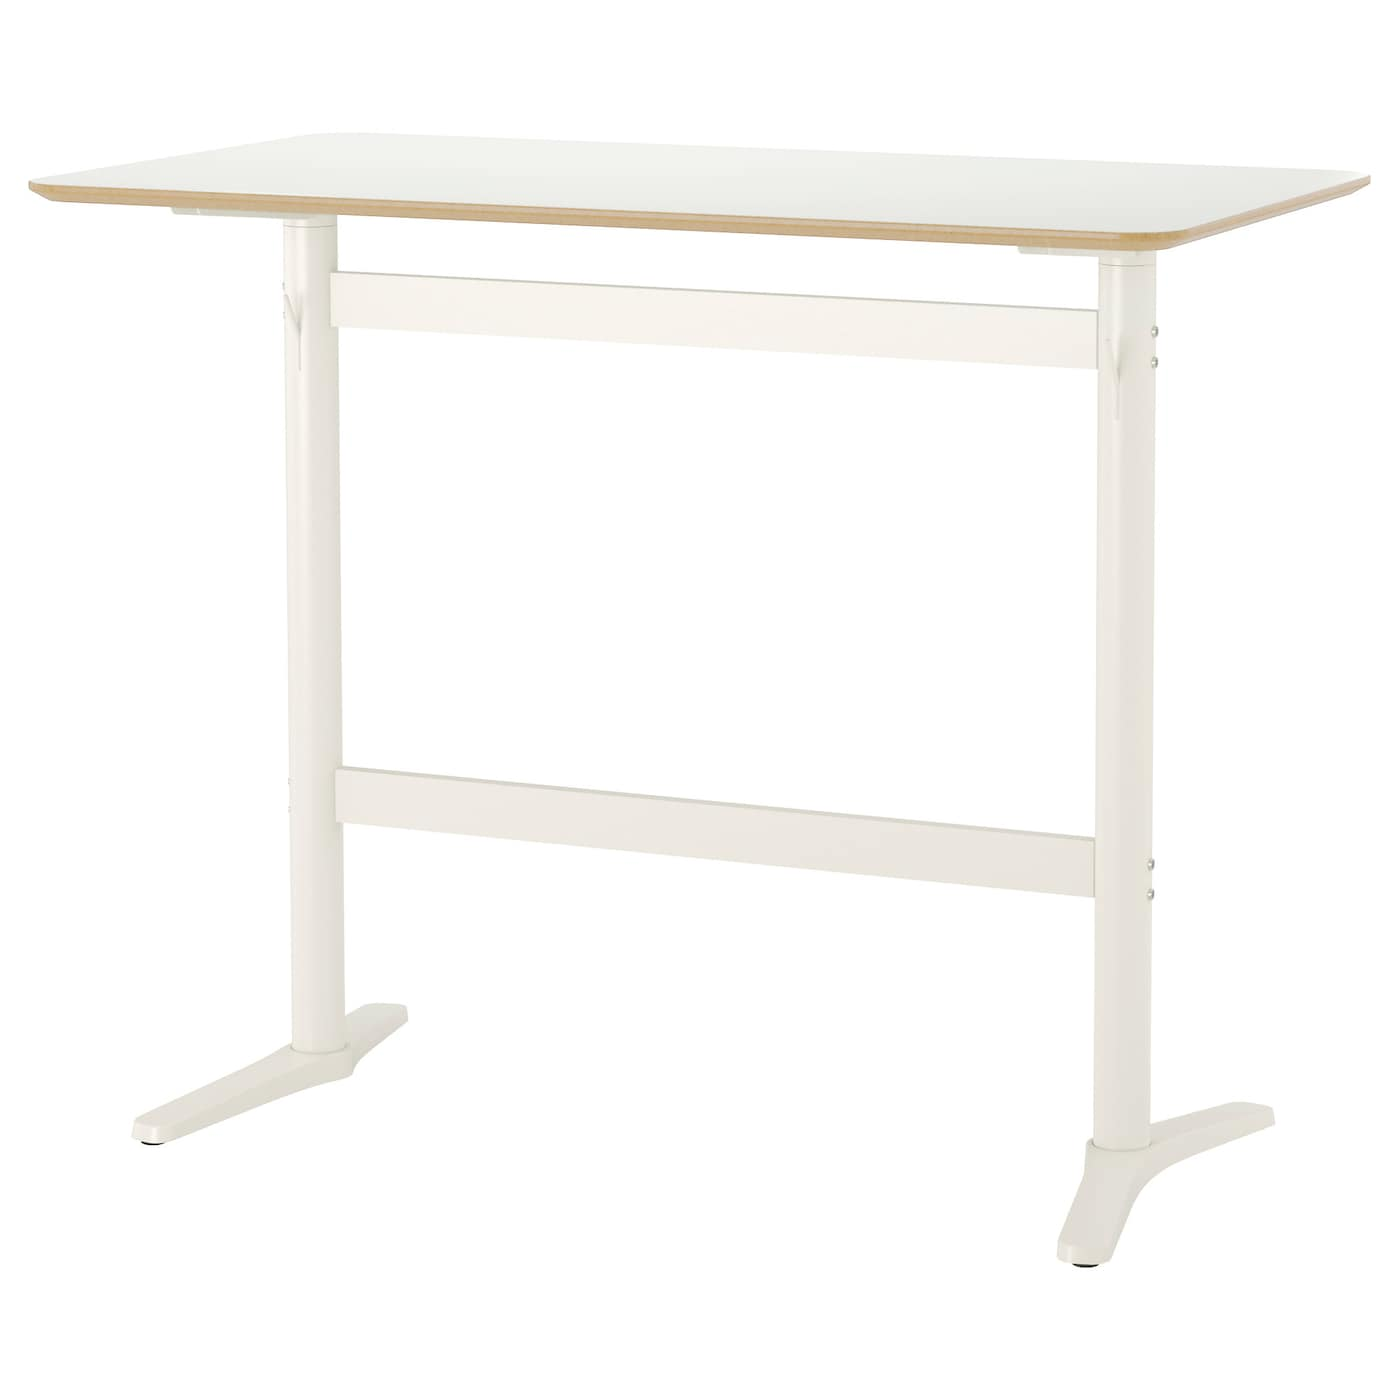 Billsta bar table white white 130 x 70 cm ikea for High table and chairs ikea